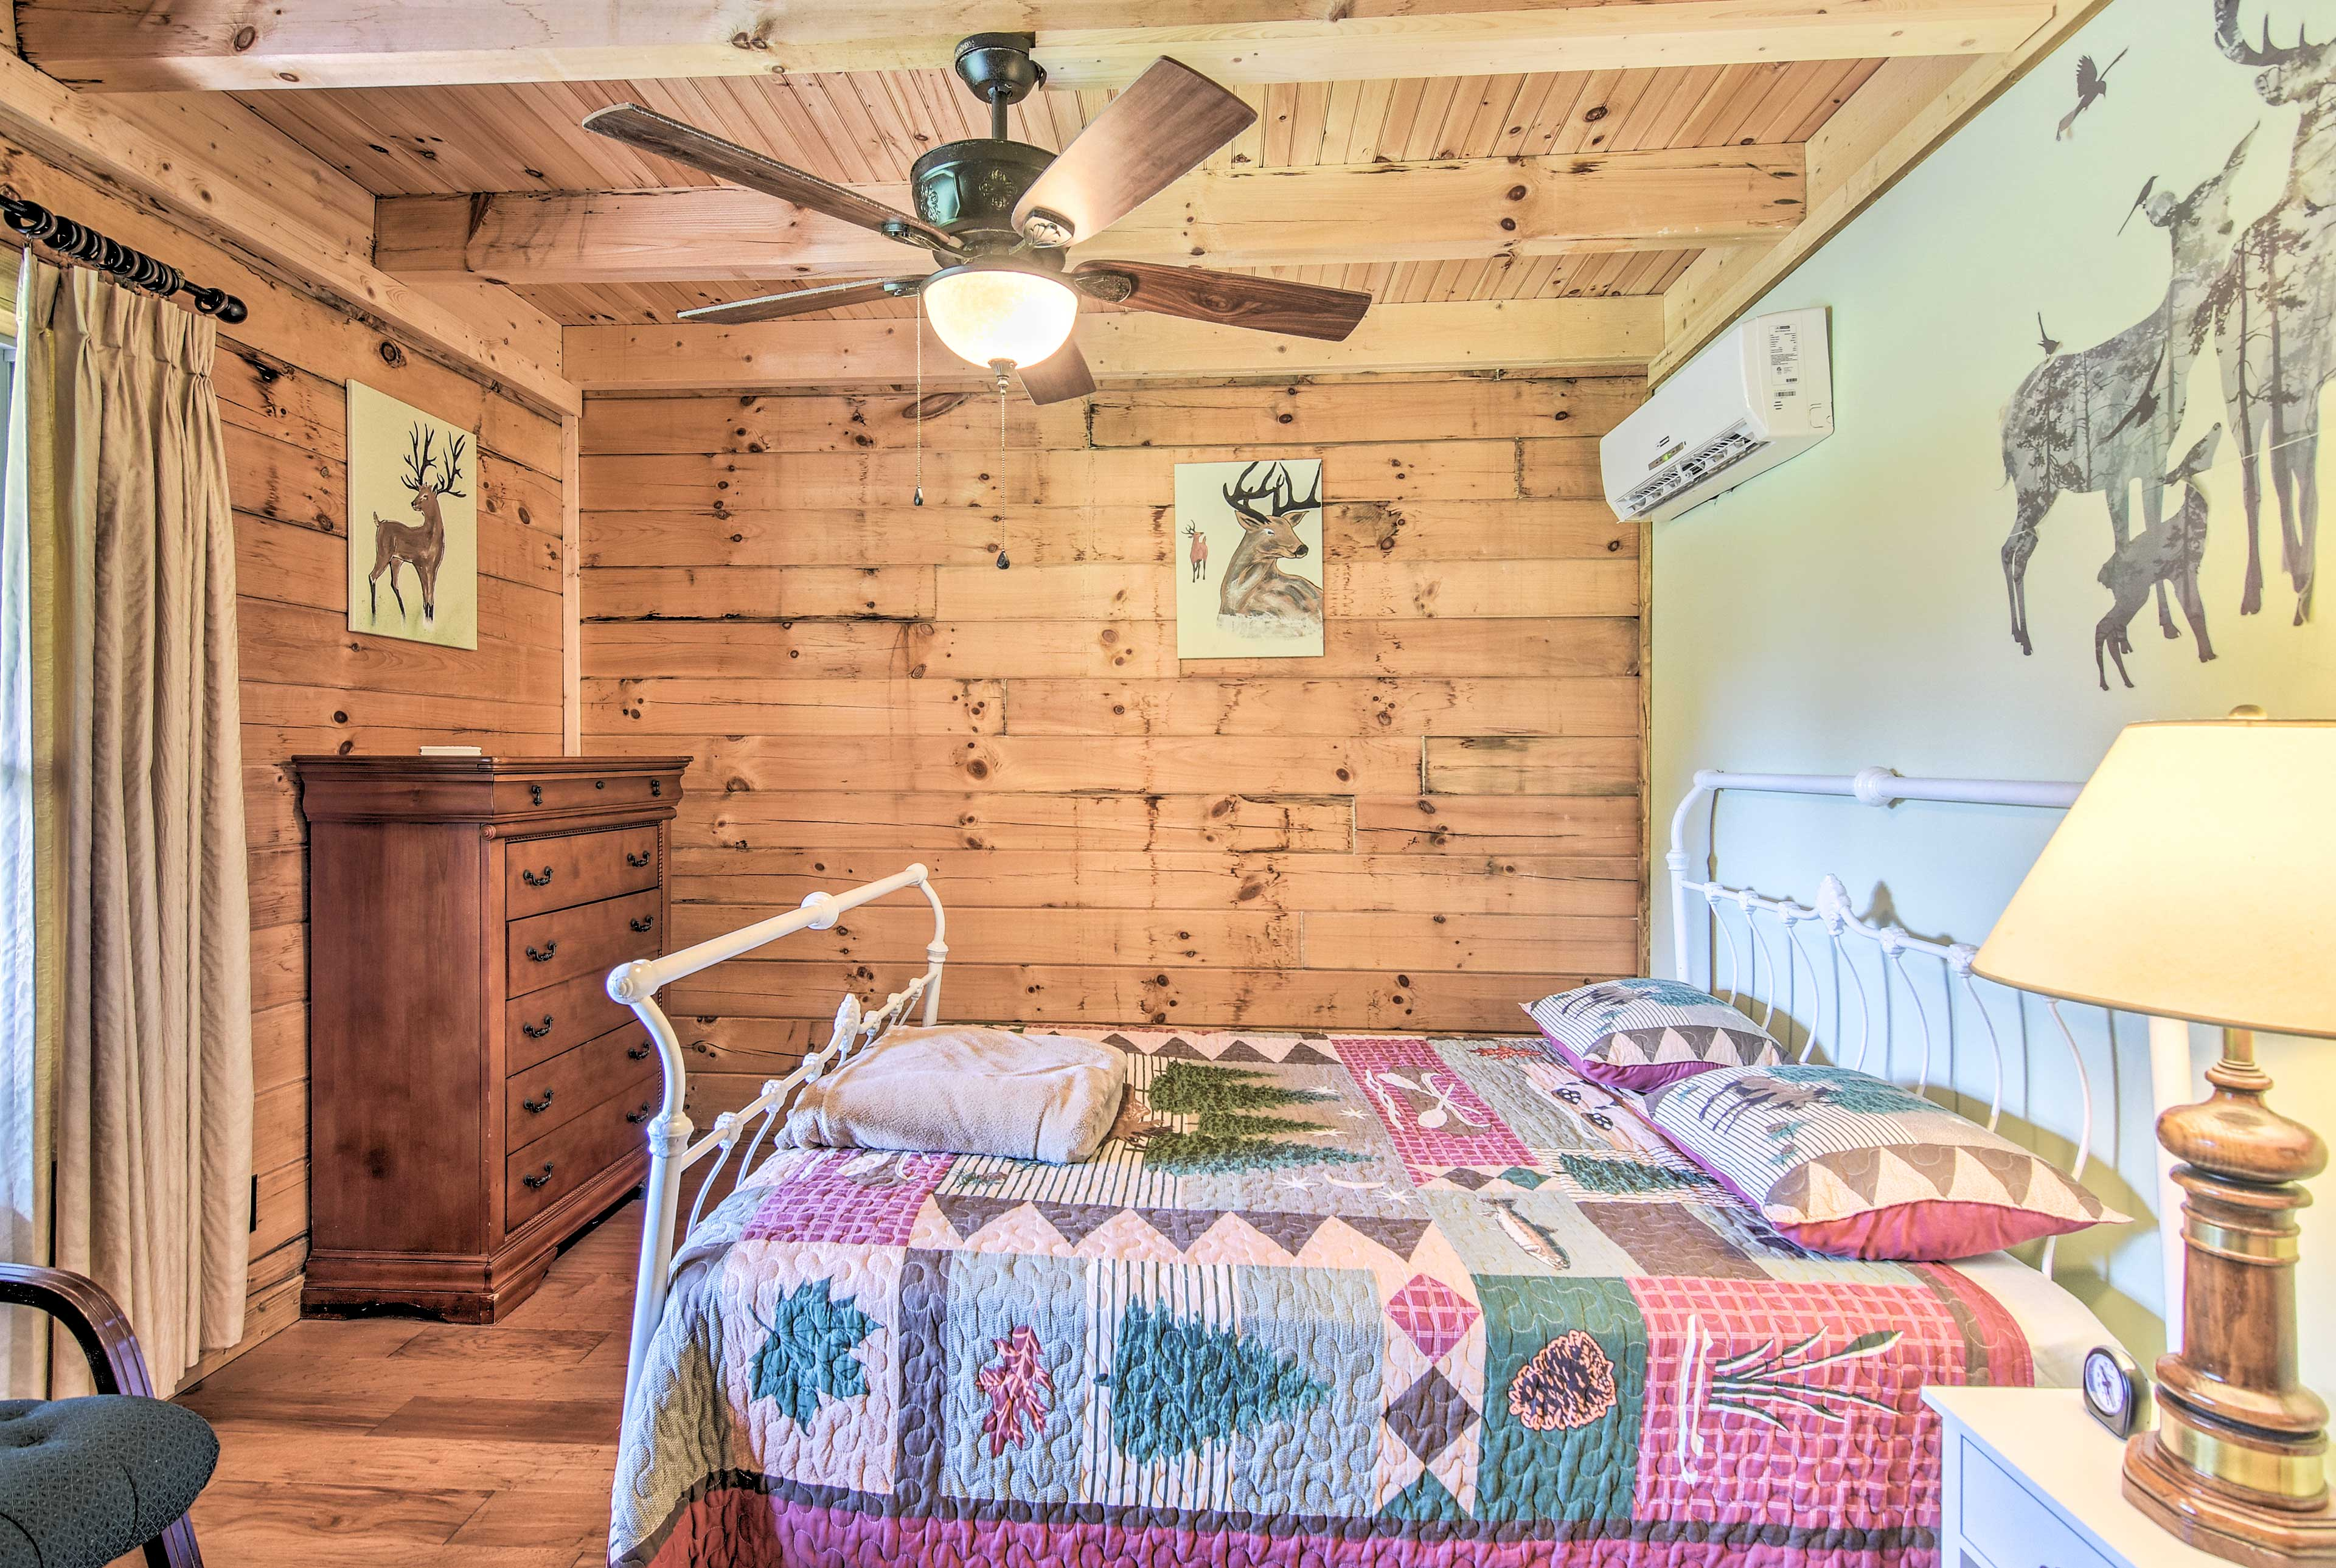 Rustic decor extends into the bedrooms.